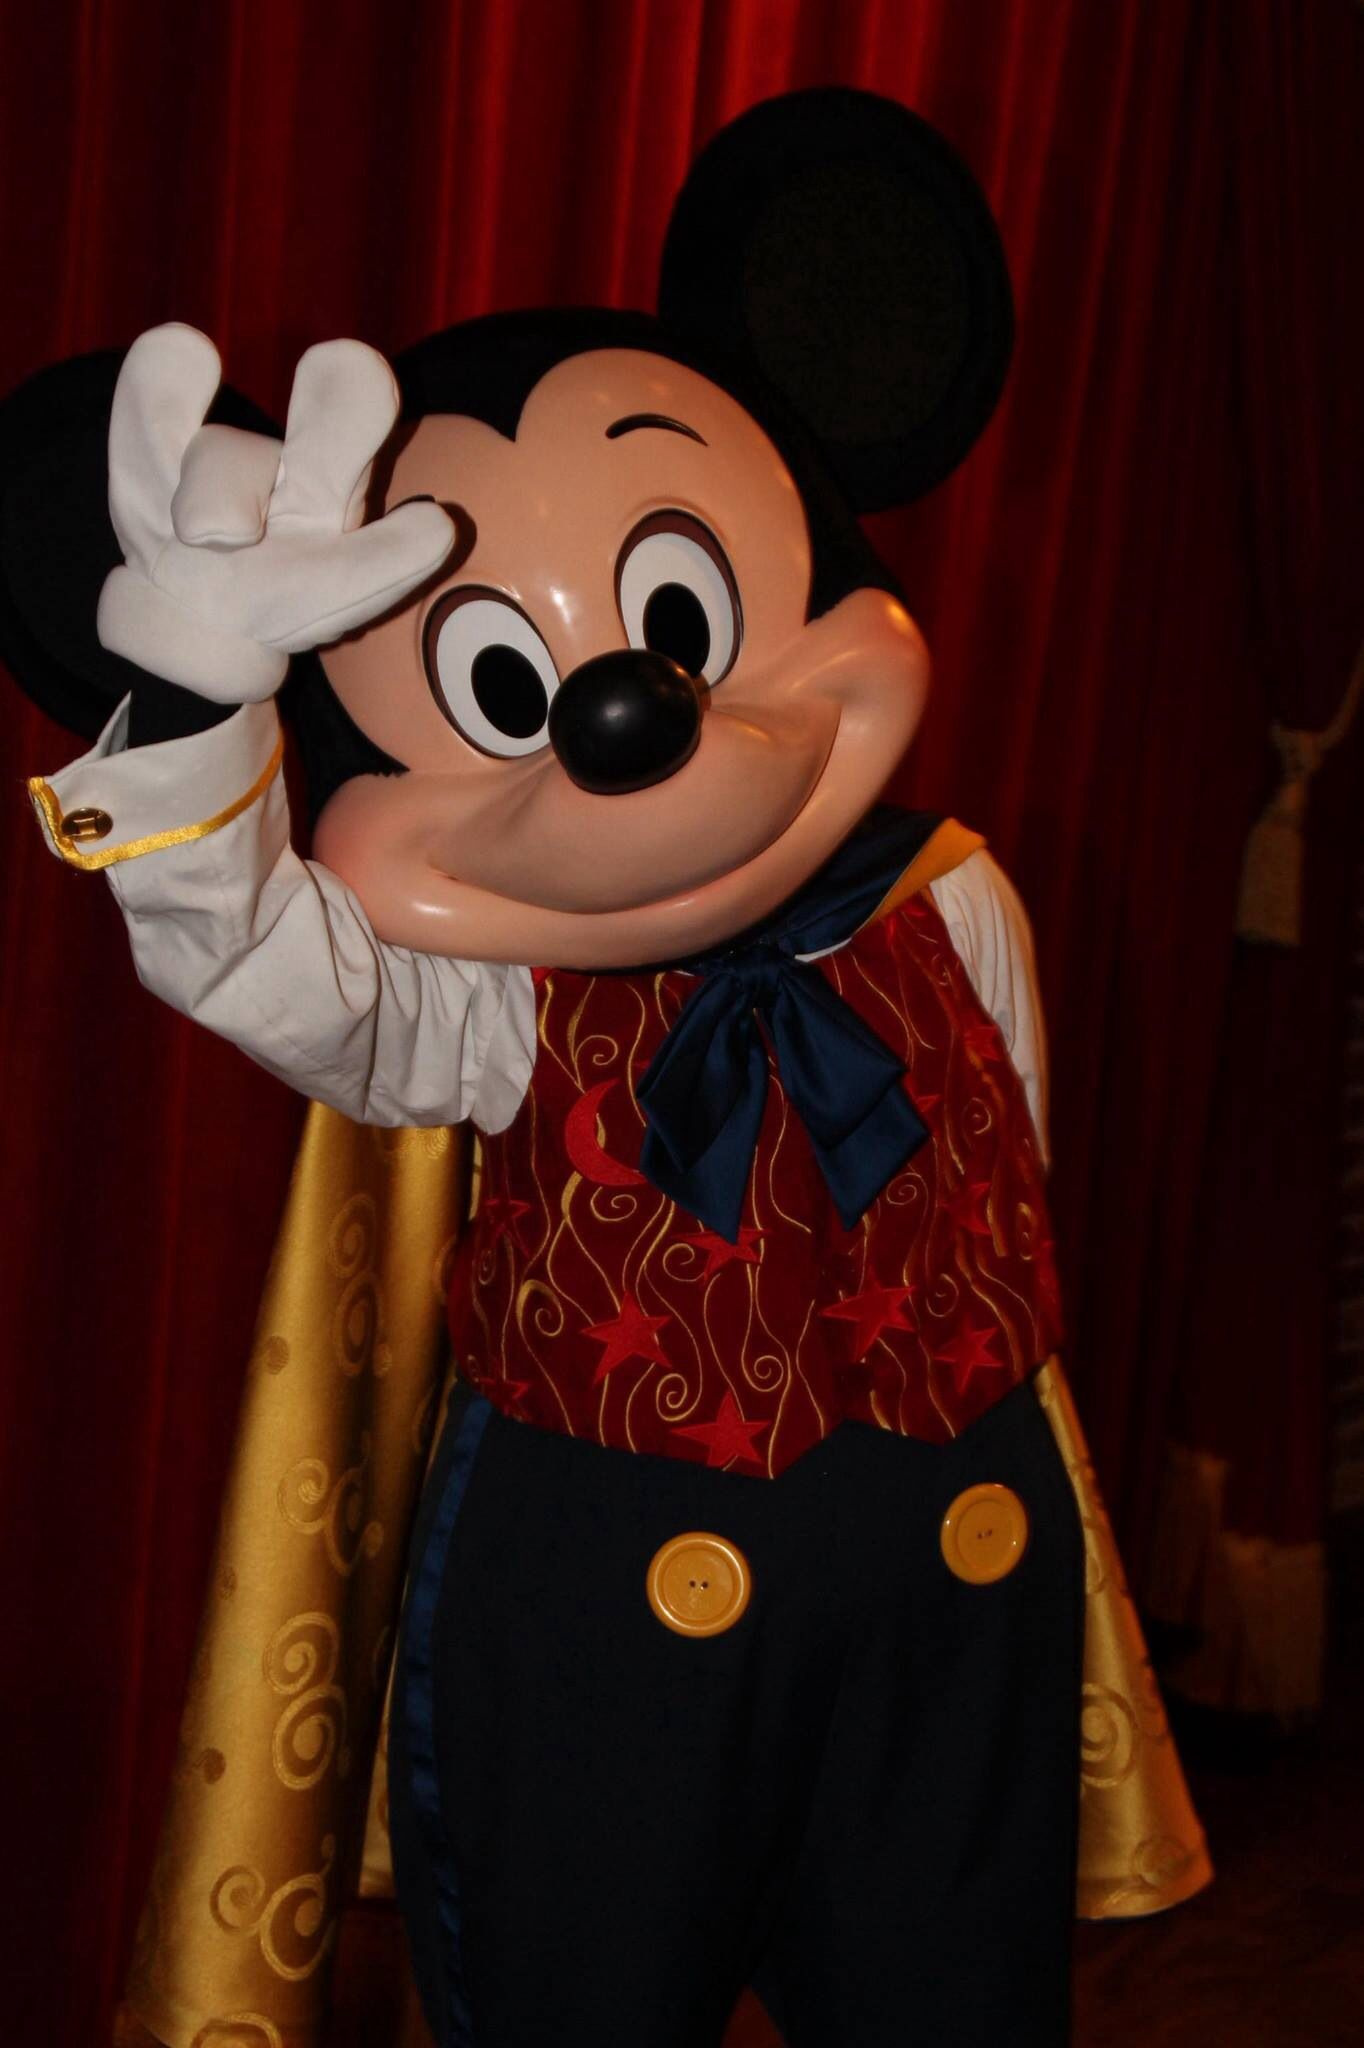 mickey mouse is saying rock on in the magic kingdom mickey mouse